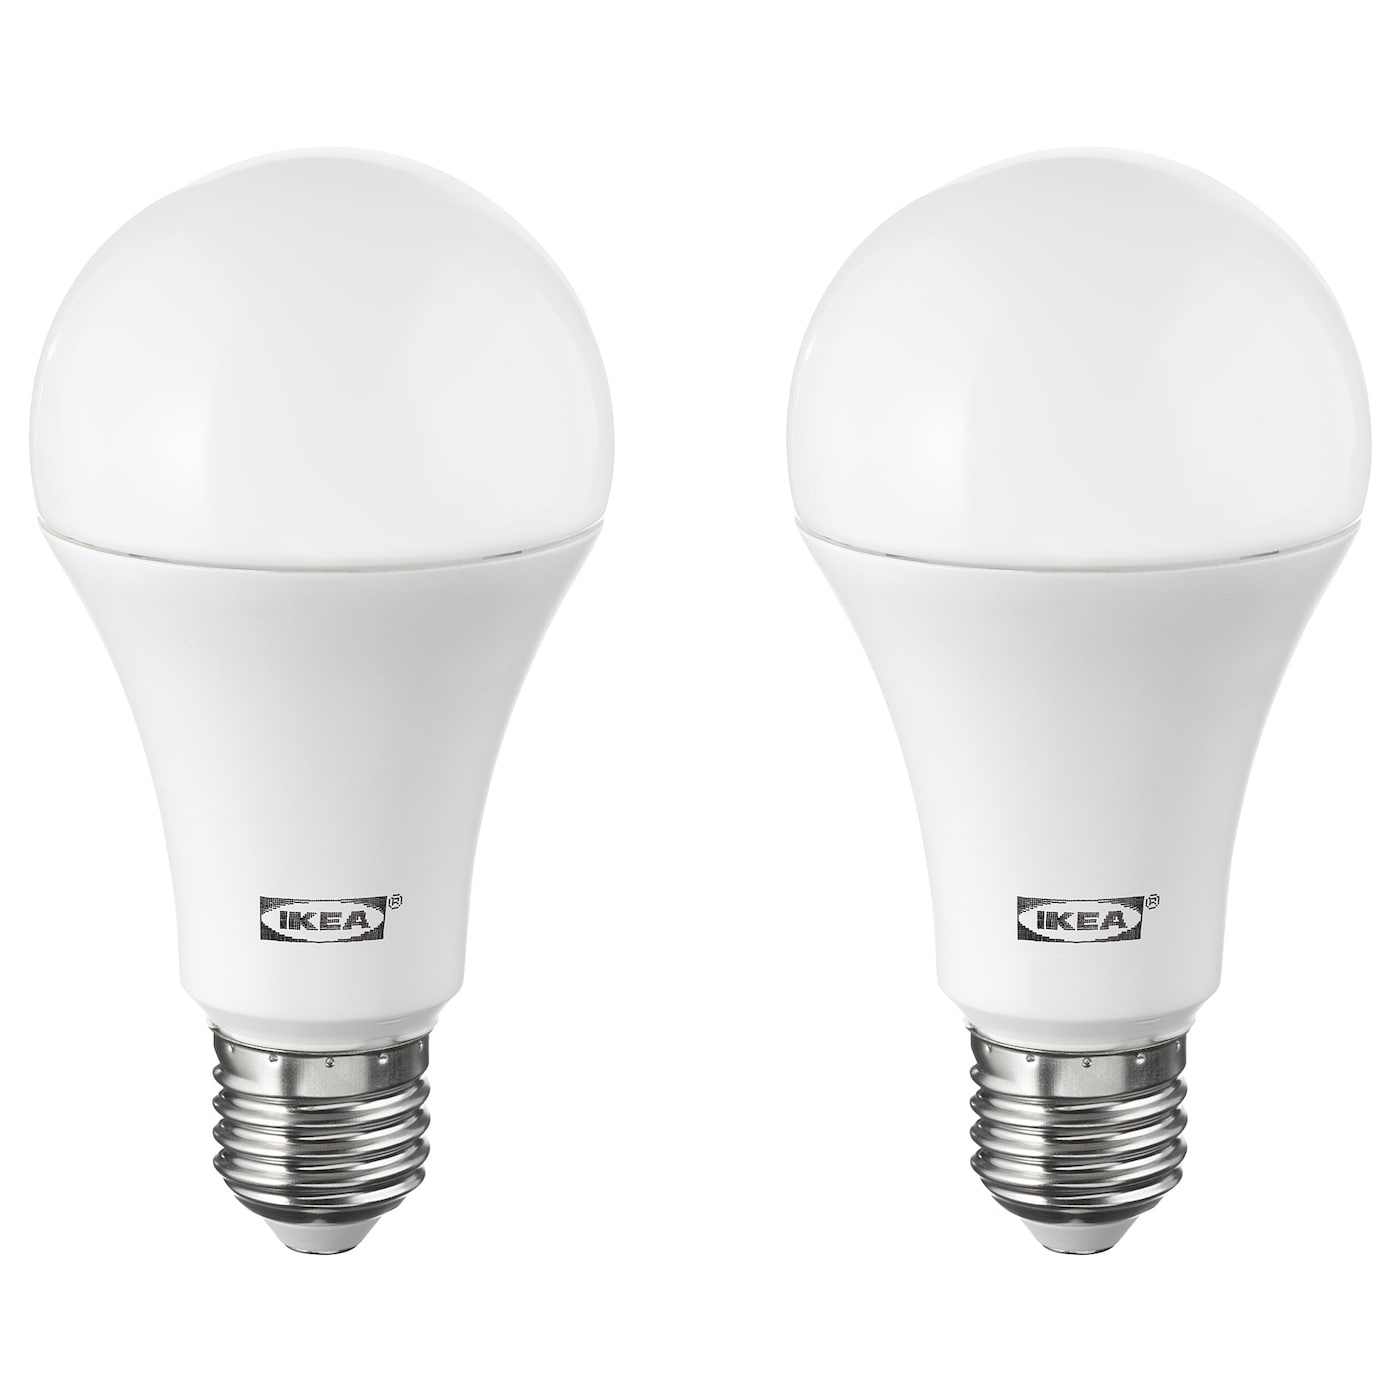 Light Bulbs Led Accessories Ikea To A Small Lightbulb With Just One Battery And Wire Ryet Bulb E27 1600 Lumen